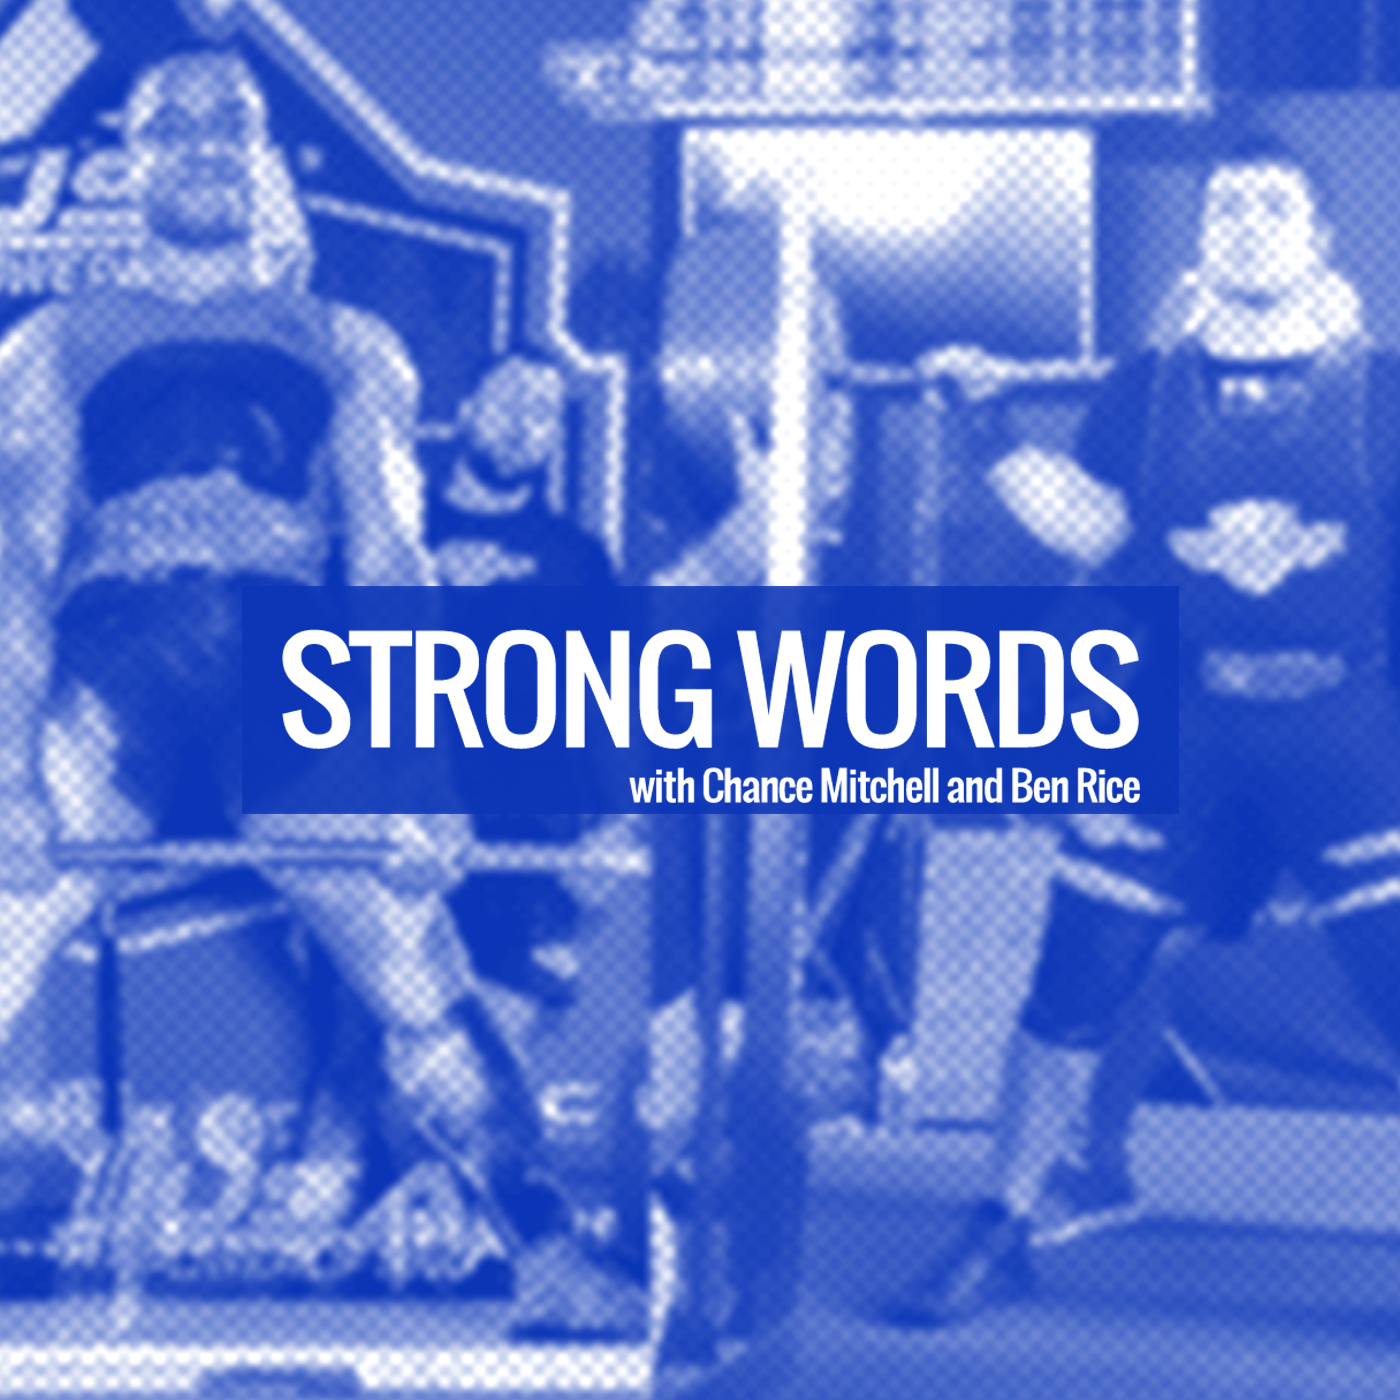 Strong Words Podcast with Chance Mitchell and Ben Rice